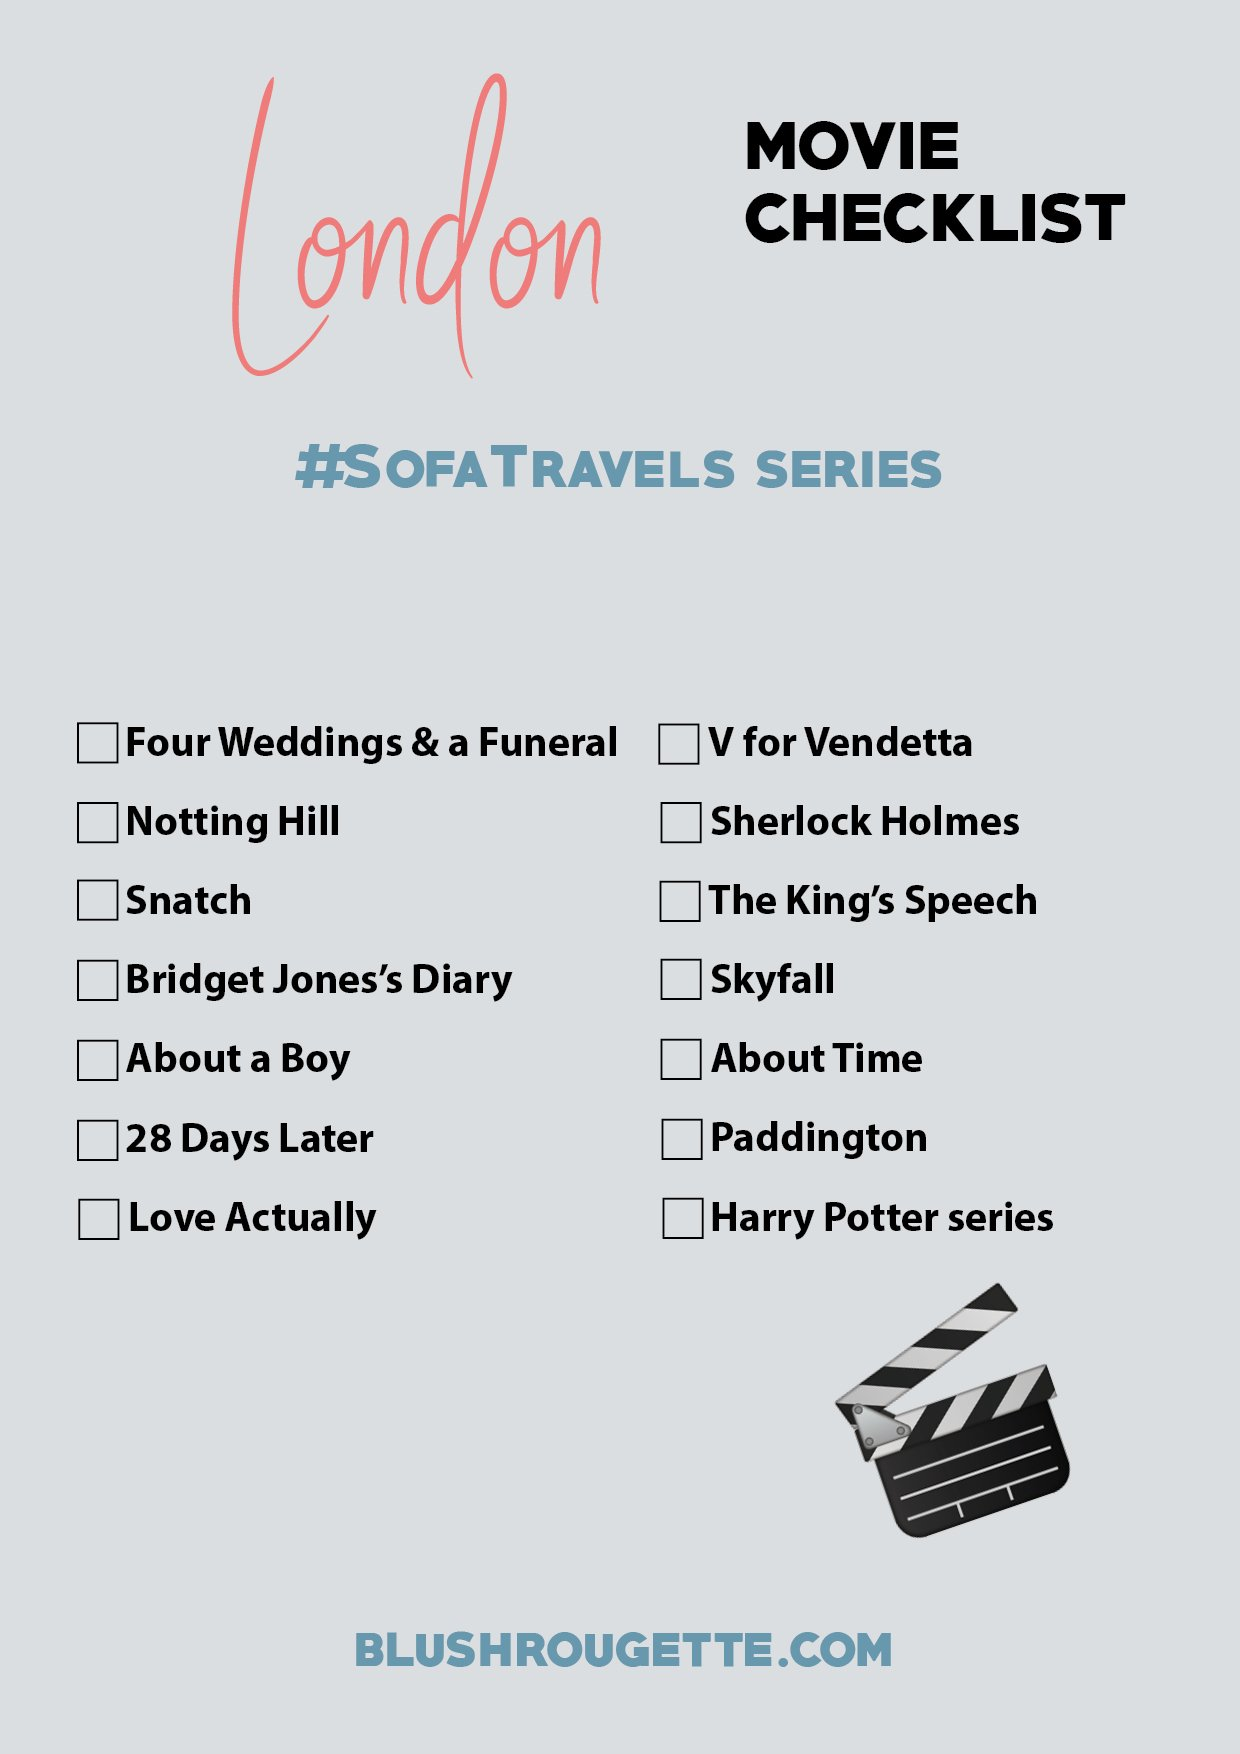 Best movies set in London checklist